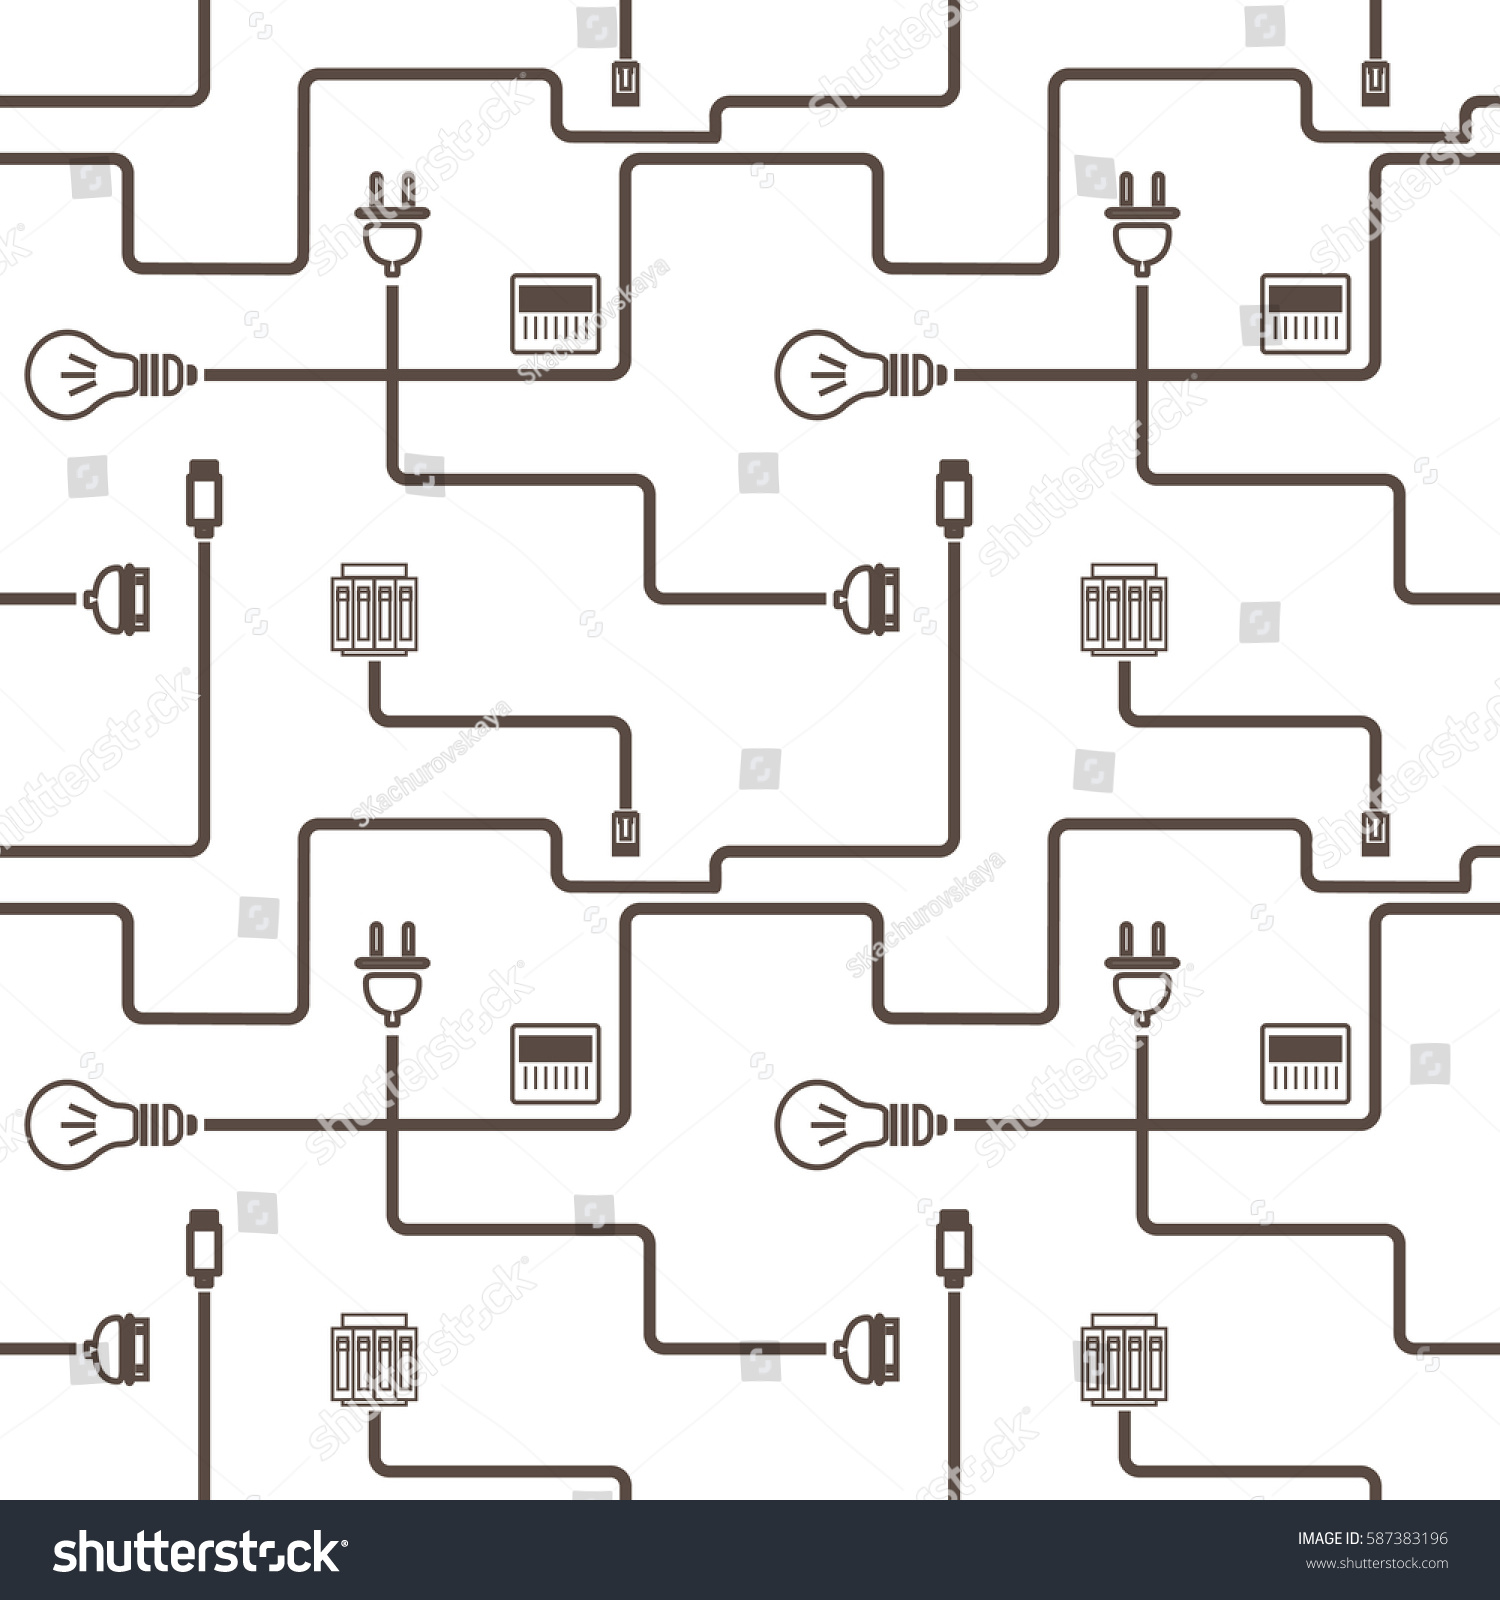 Simple Pattern Wire Electrical Products Stock Vector Royalty Free Iid Wiring Diagram With And